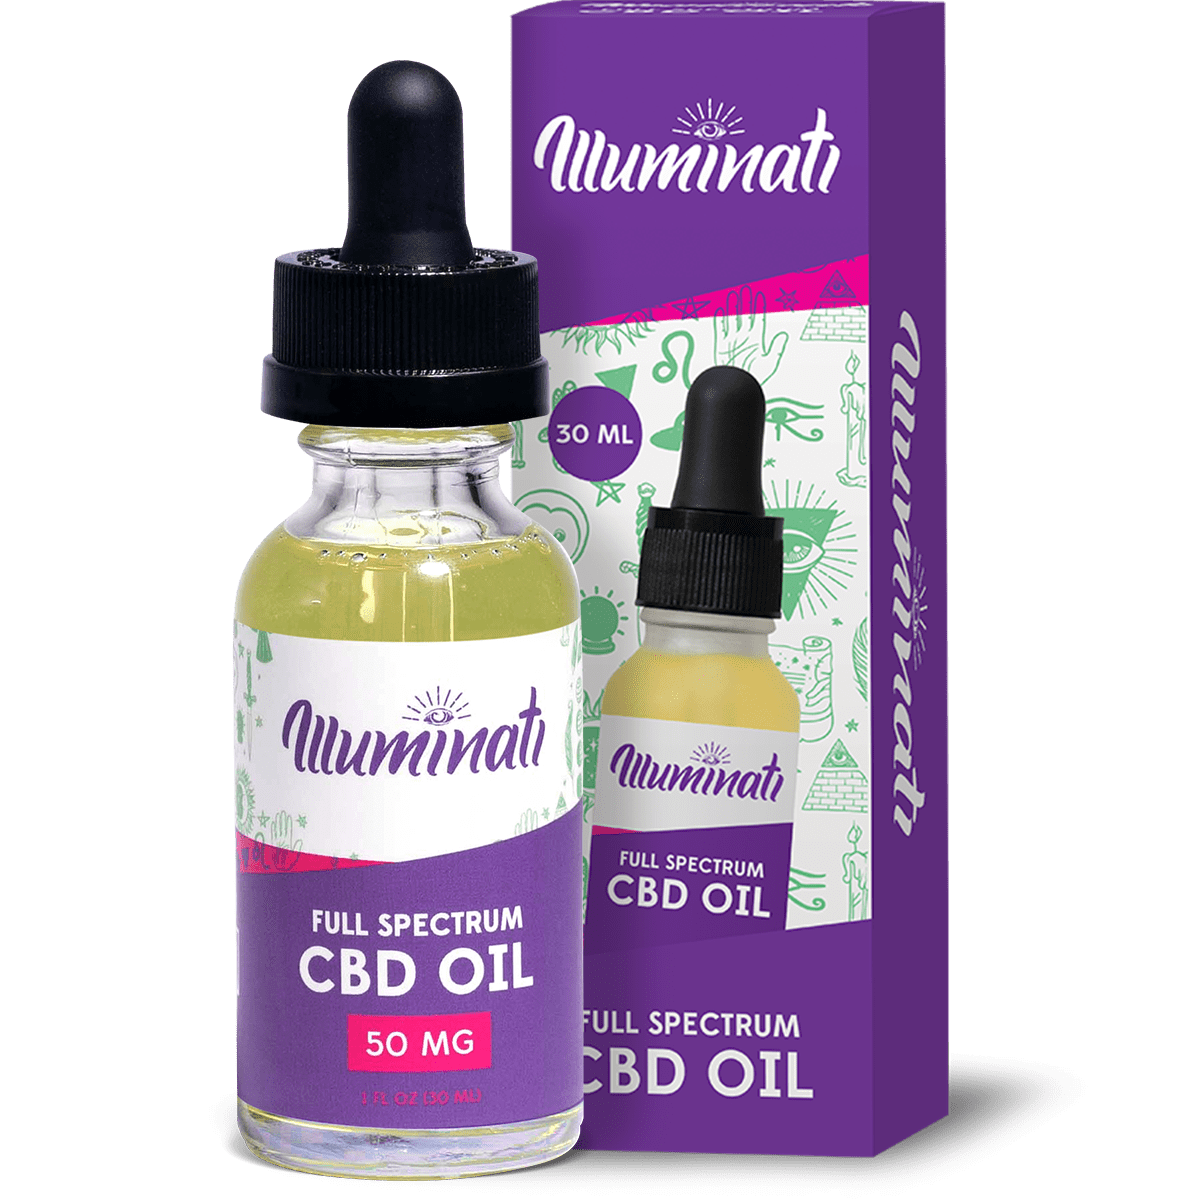 Illuminati CBD Oil Drops 50mg